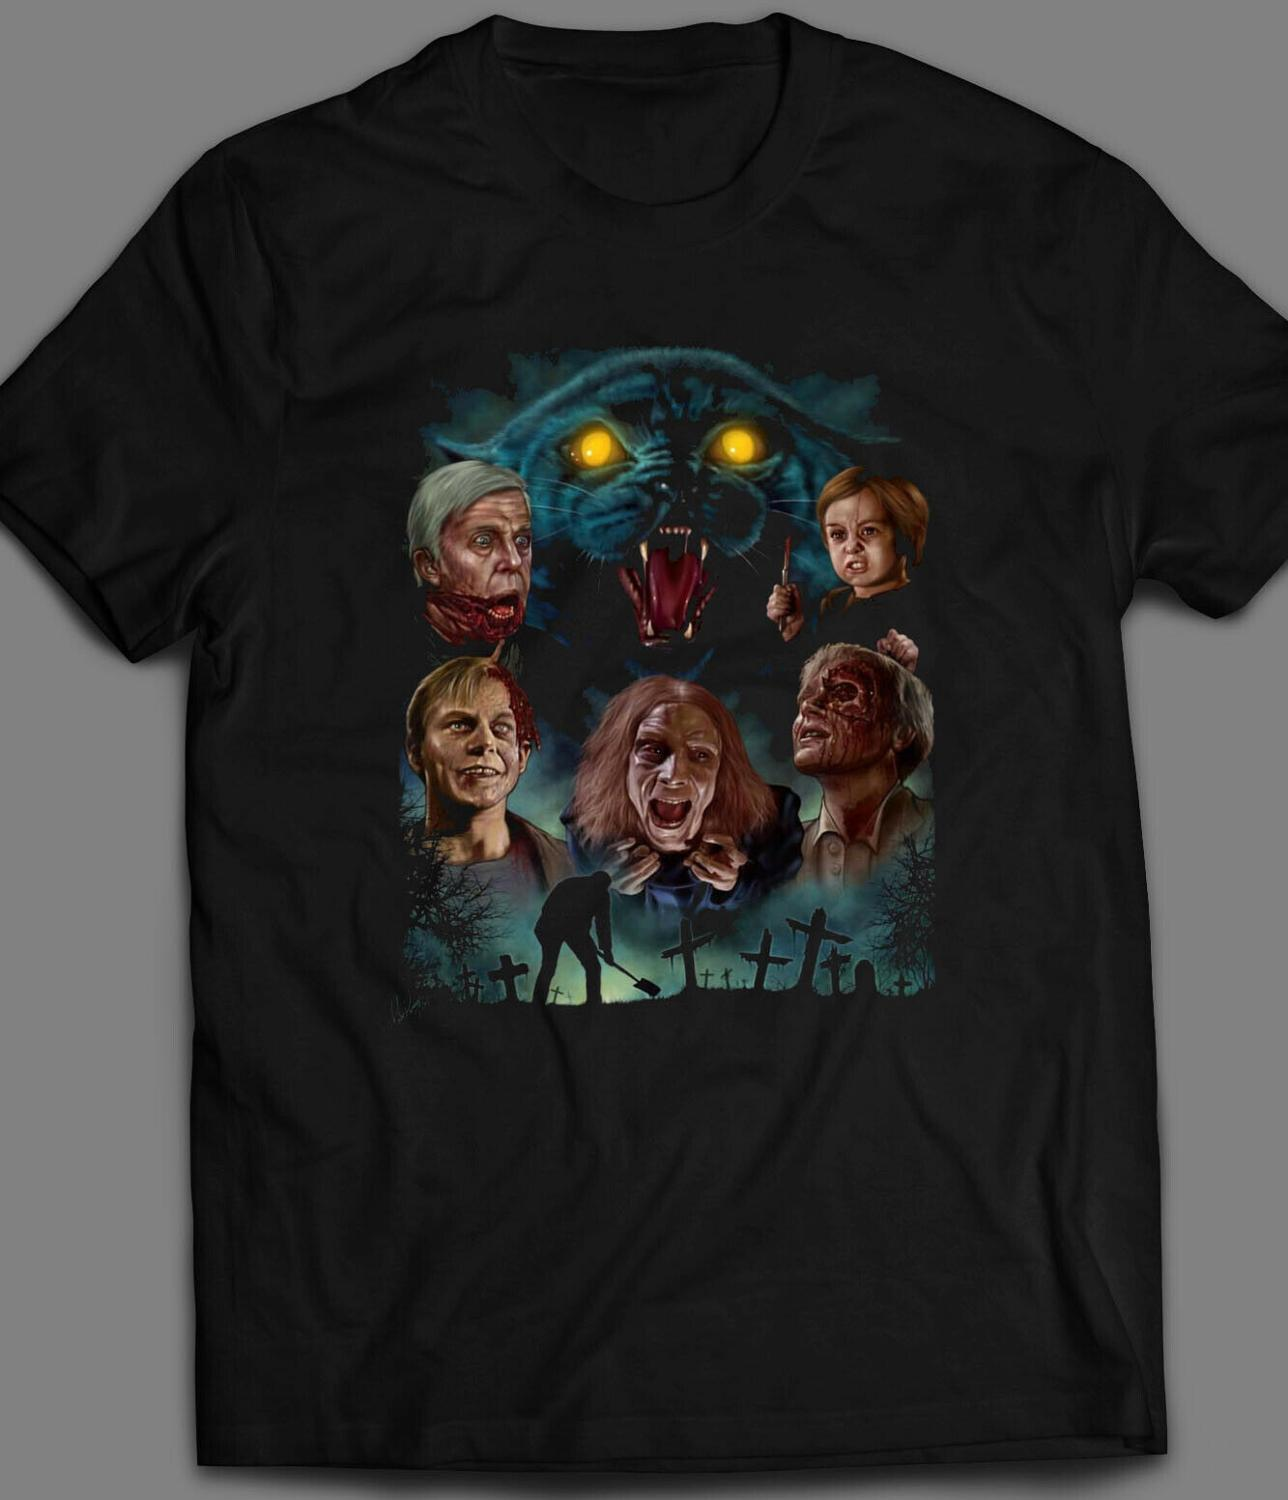 HORROR MOVIE <font><b>PET</b></font> <font><b>SEMATARY</b></font> <font><b>POSTER</b></font> OLDSKOOL T-SHIRT MANY SIZES ajax billie eilish image